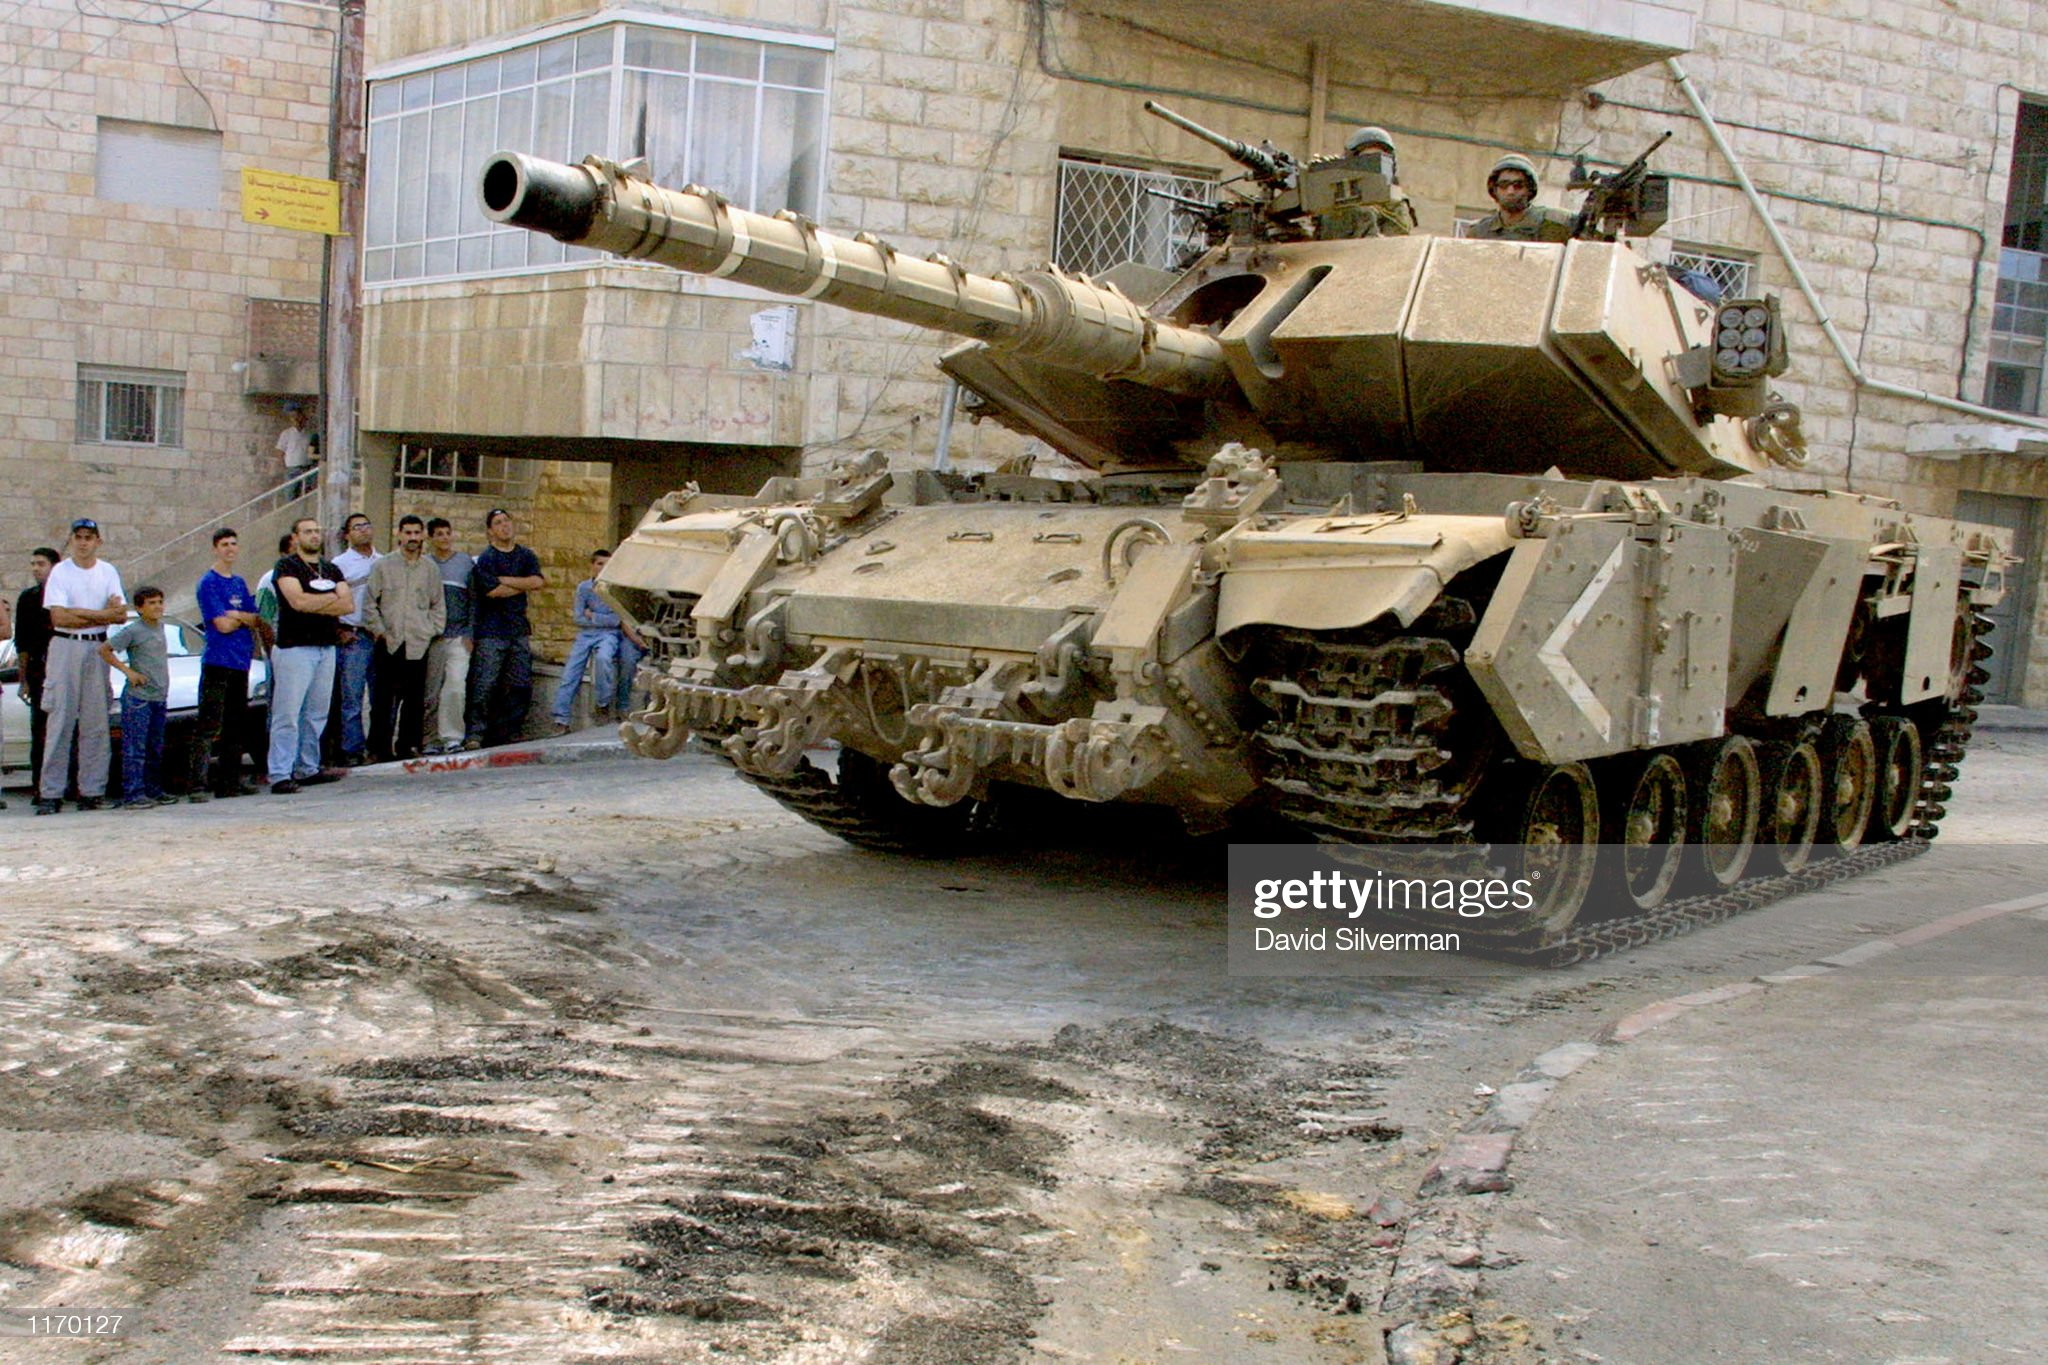 https://media.gettyimages.com/photos/palestinians-watch-as-an-israeli-tank-changes-position-october-26-in-picture-id1170127?s=2048x2048